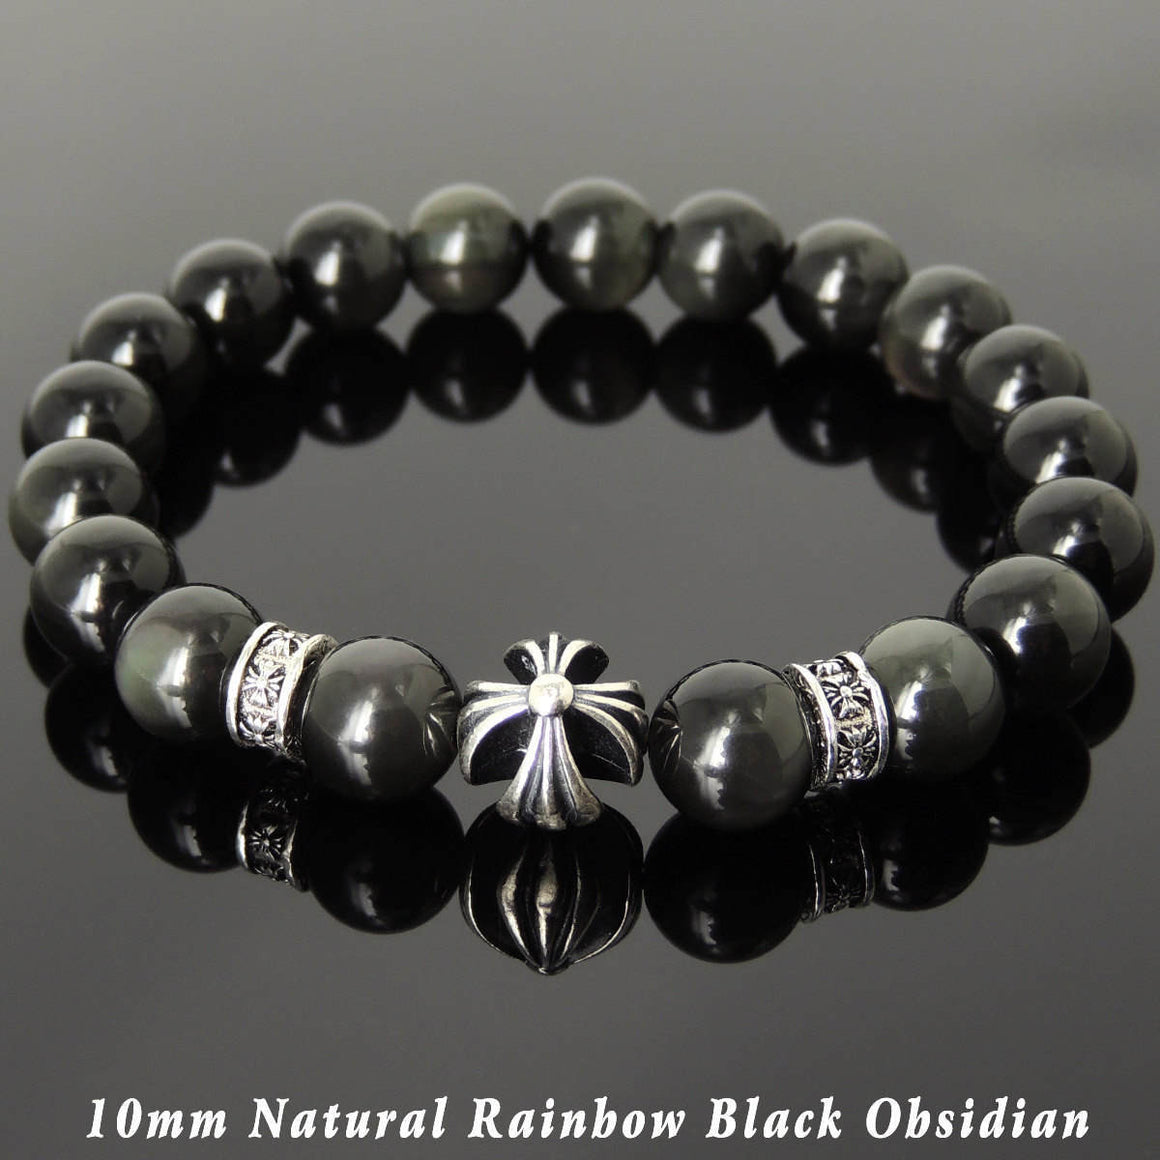 10mm Rainbow Black Obsidian Healing Gemstone Bracelet with S925 Sterling Silver Cross & Spacer Beads - Handmade by Gem & Silver BR1090